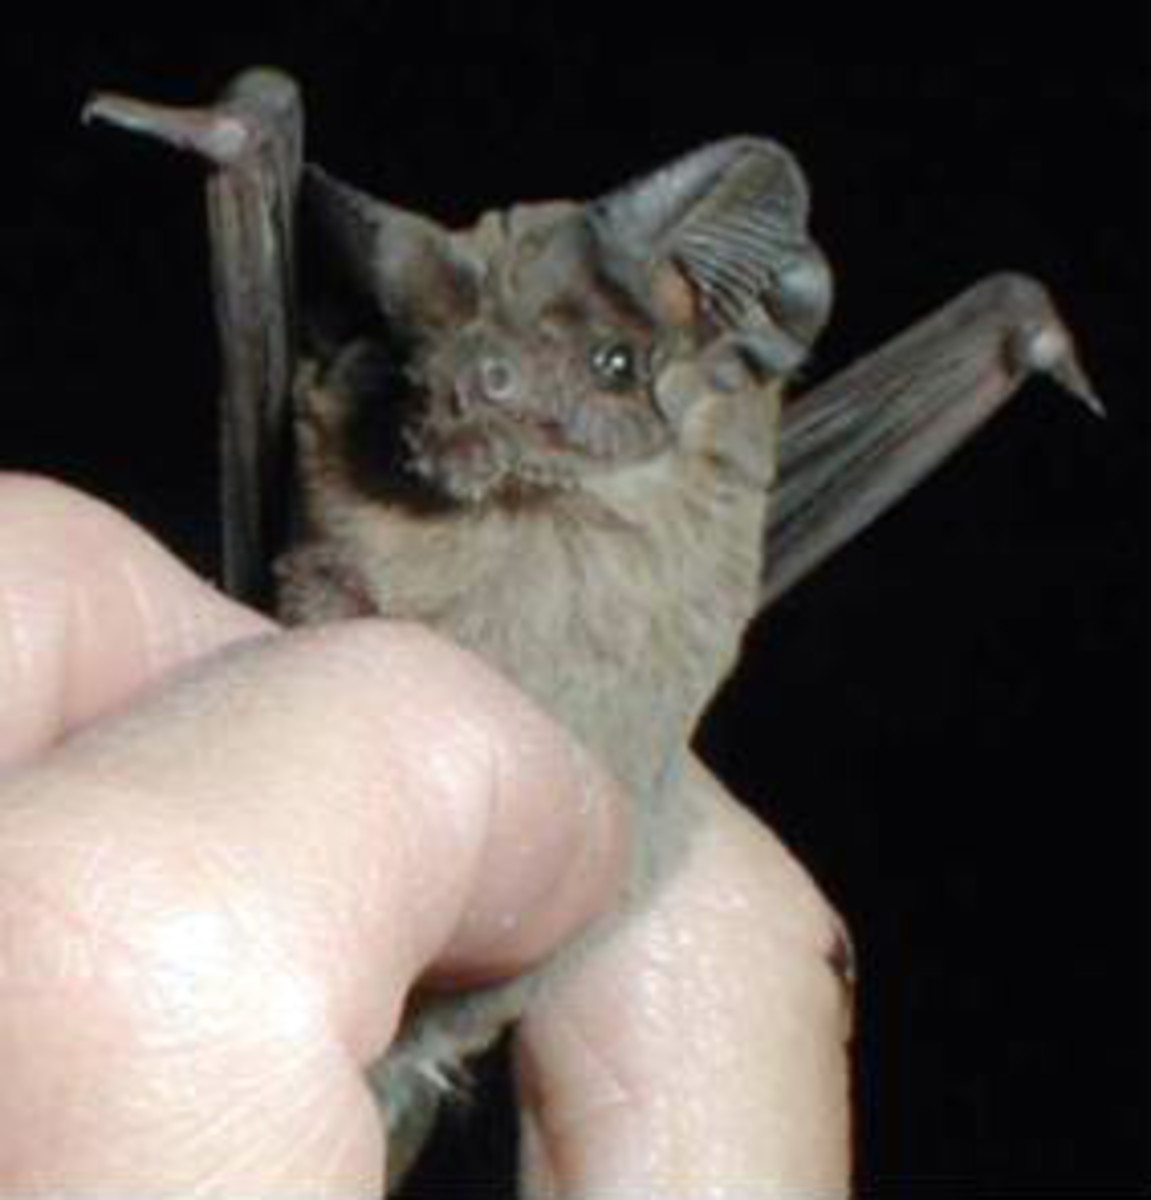 A Brazilian free-tailed bat viewed up close.